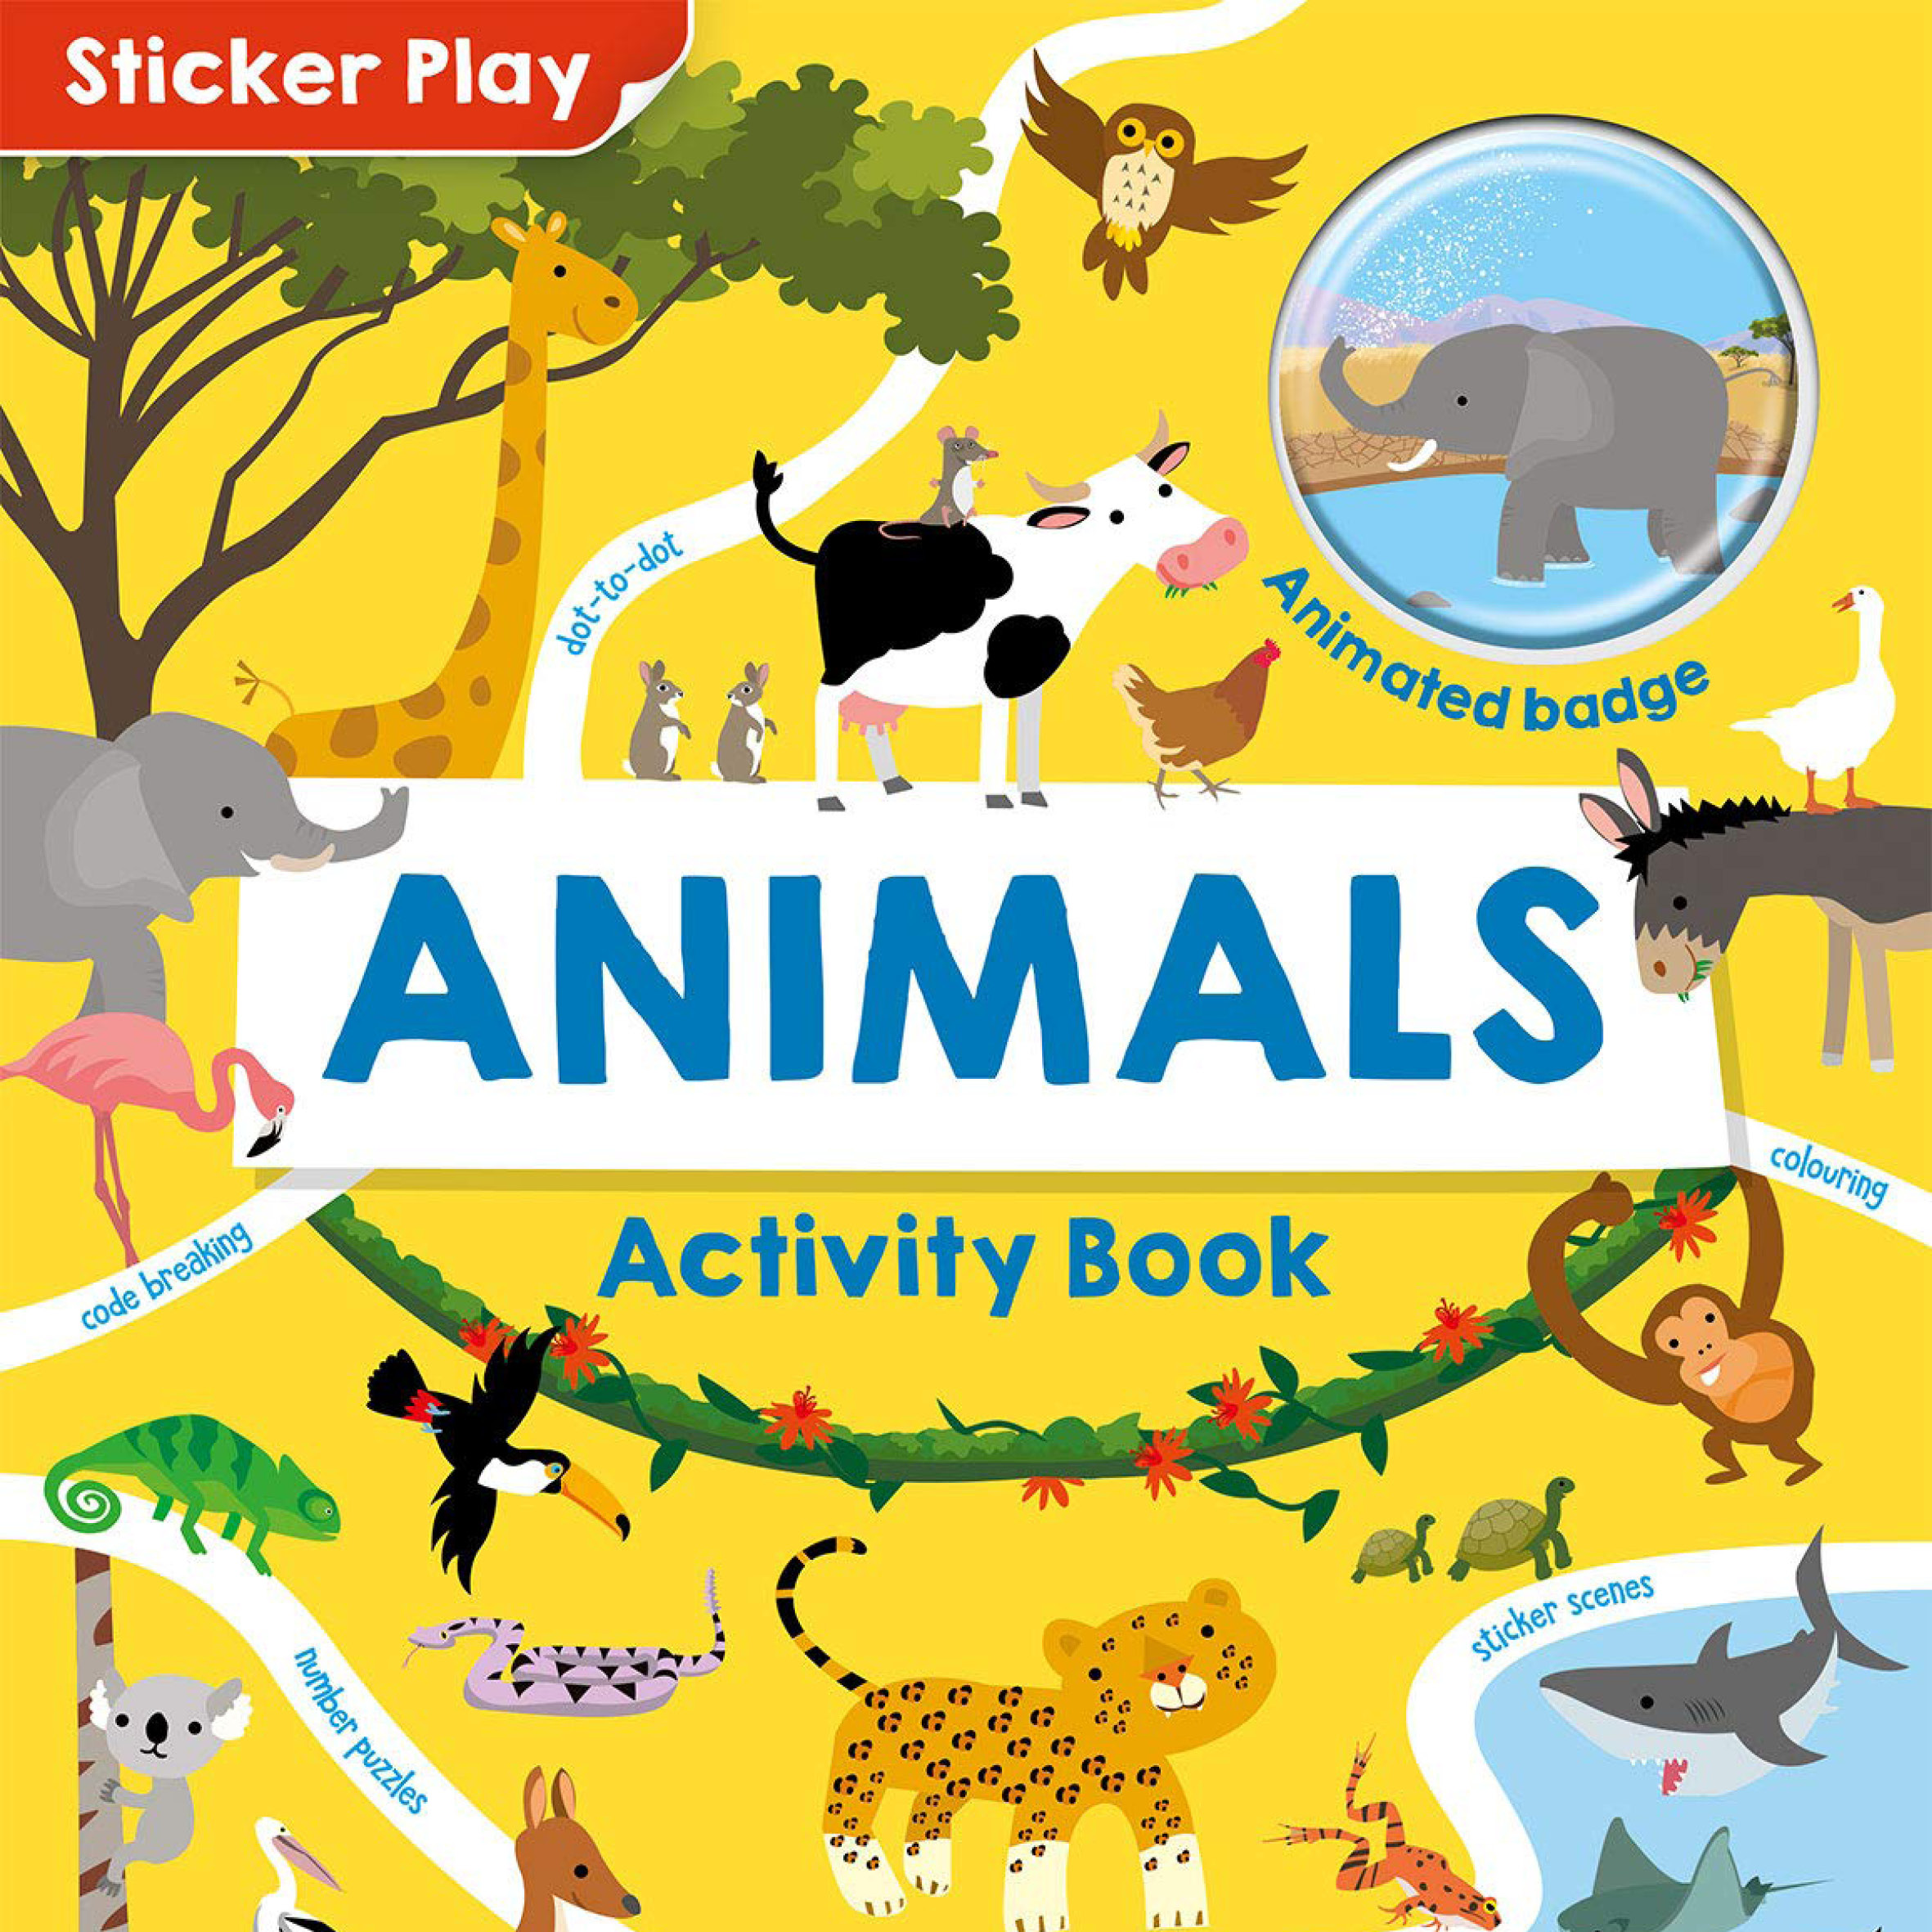 78 Dynamo Sticker Play ANIMALS_THUMB